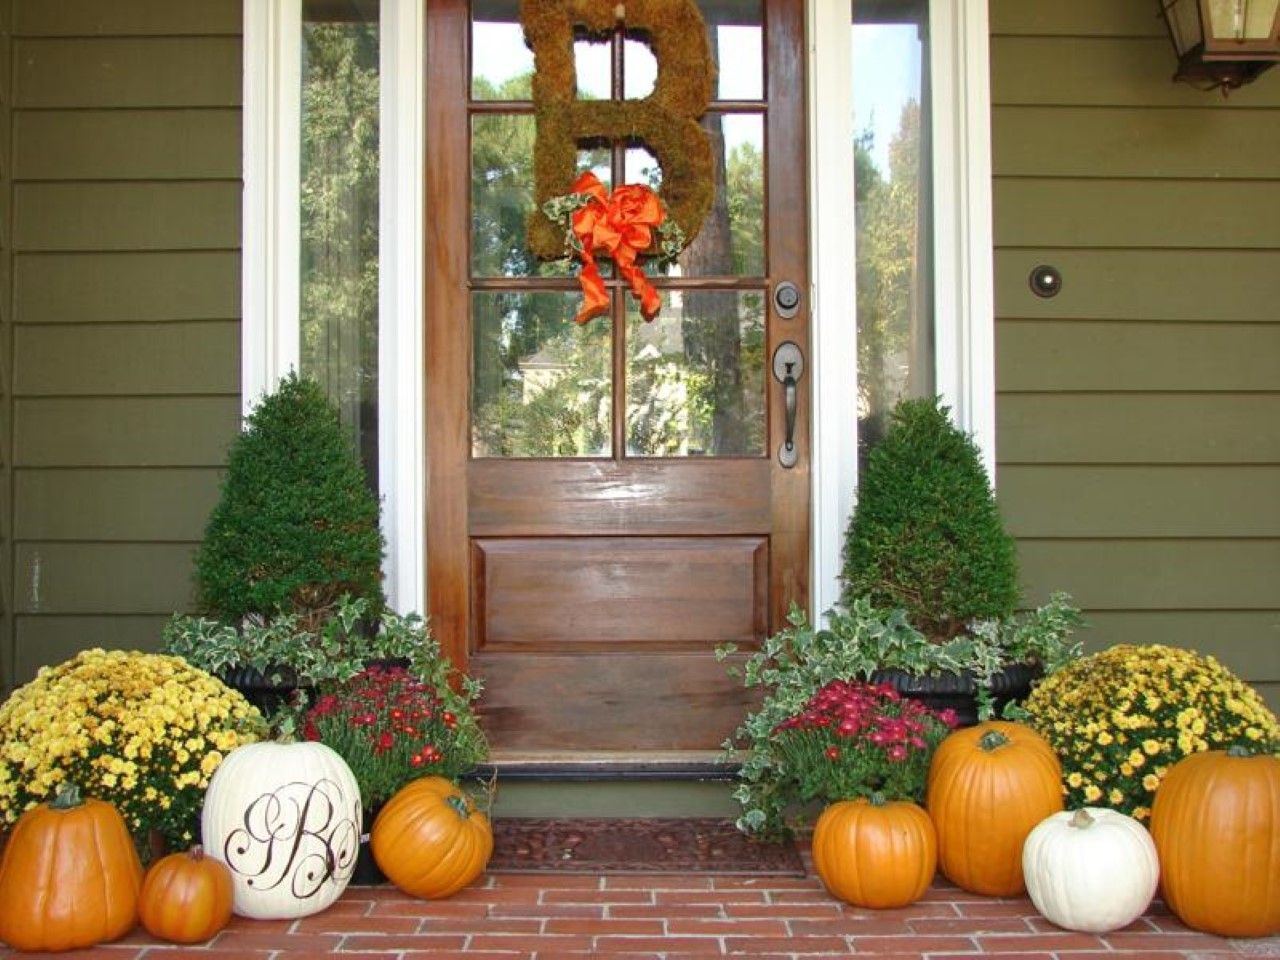 Merveilleux B Letter With Ribbon On Door And Snazzy Fall Front Porch Decorating Idea  Plus Colourful Flowers And Mature Pumpkins